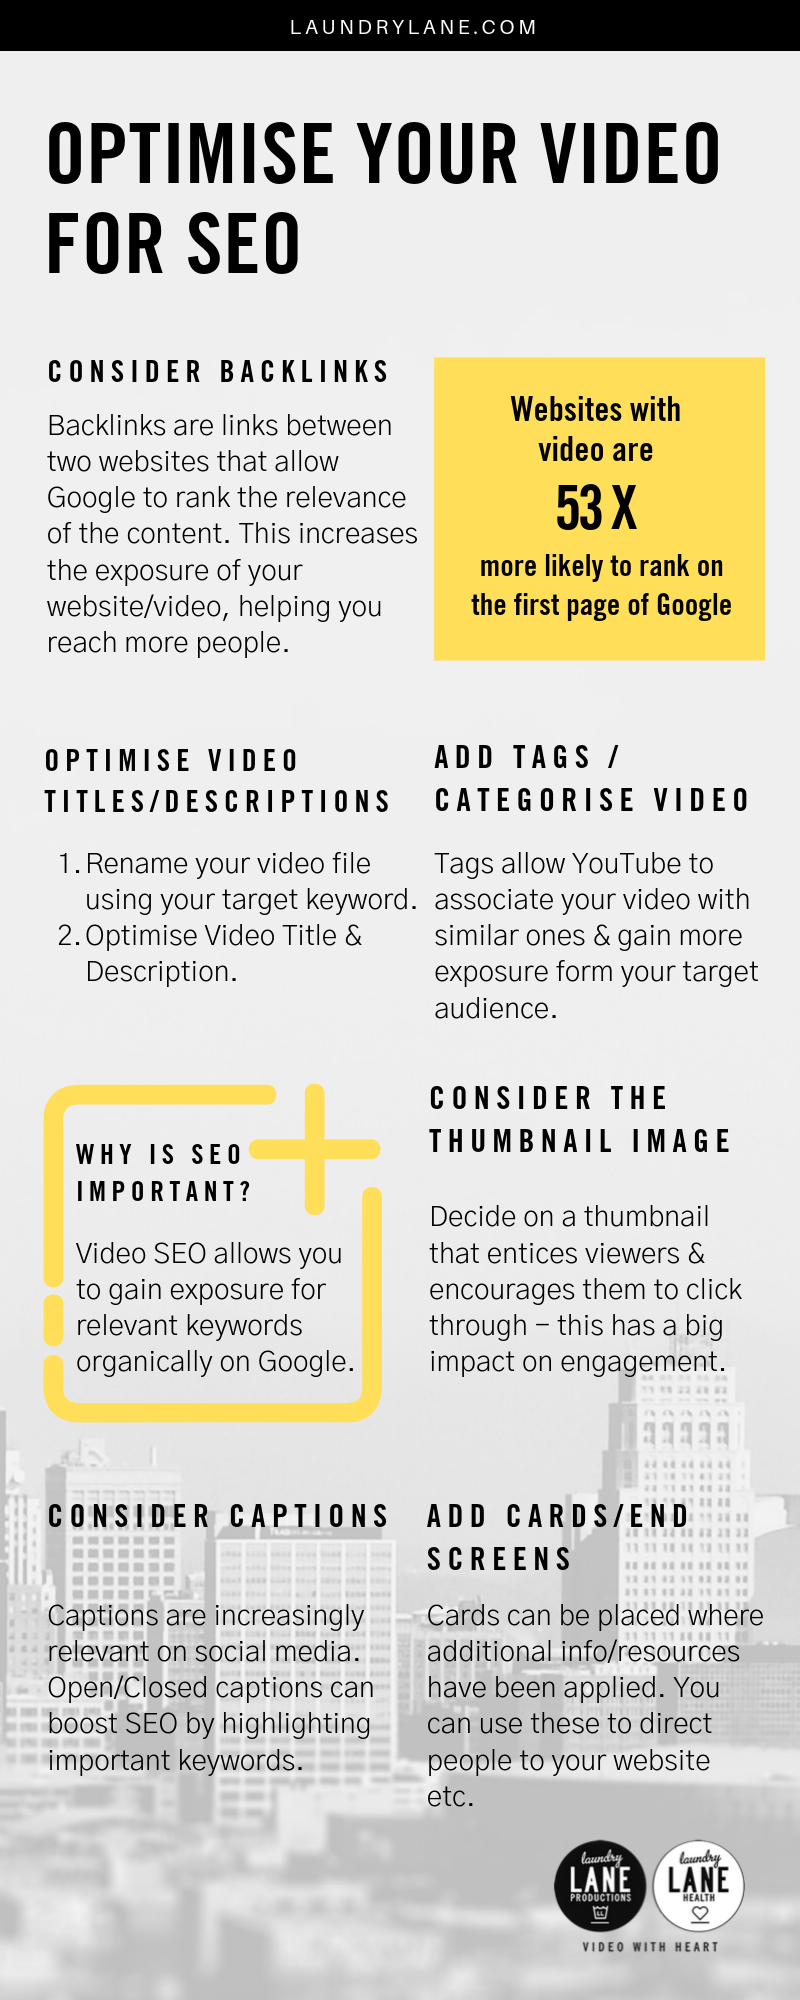 How to Optimise your Video for SEO